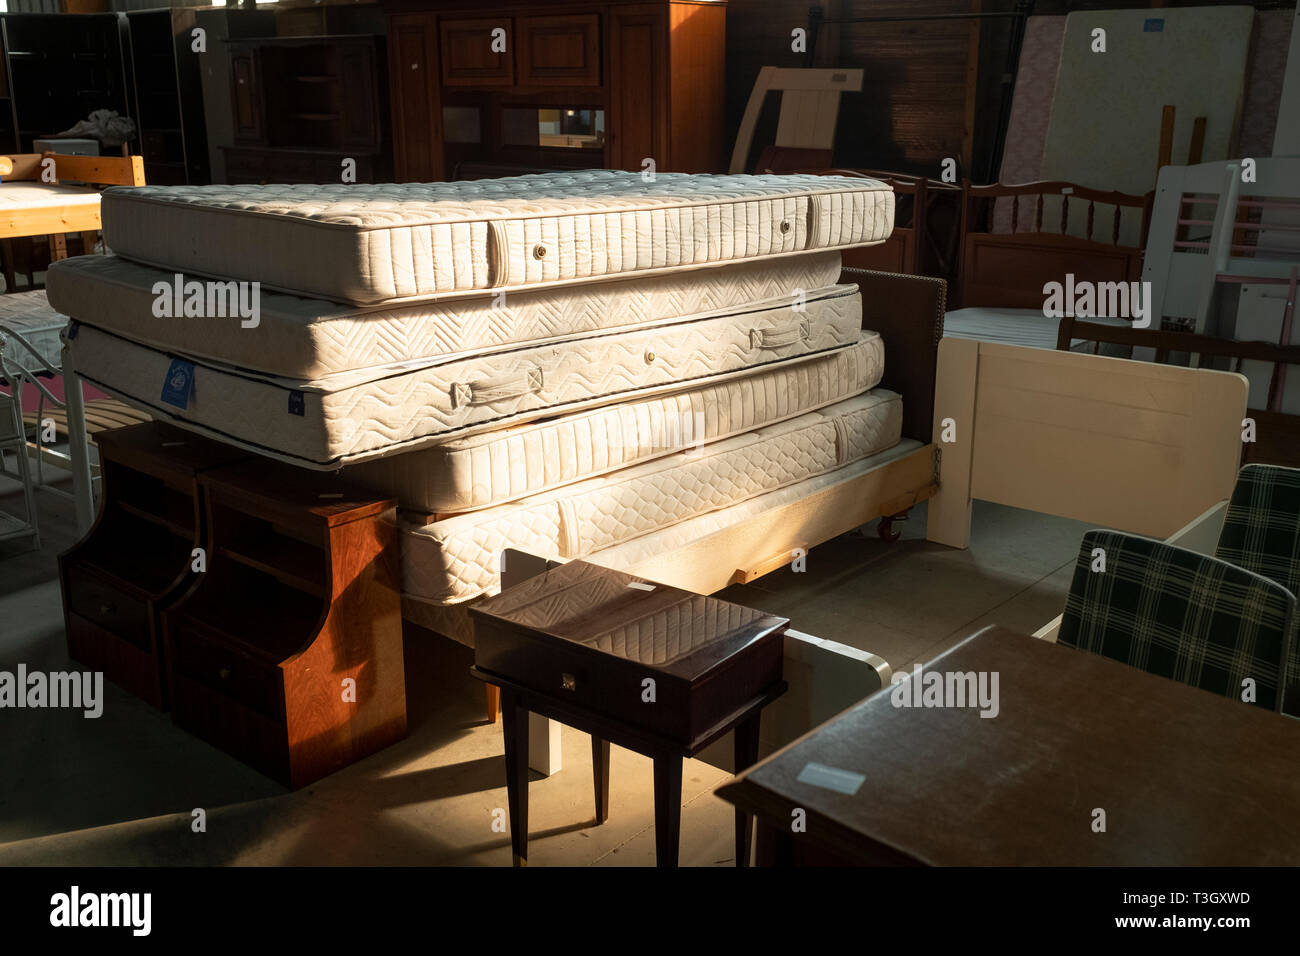 Used mattresses for sale at second-hand warehouse Stock ...